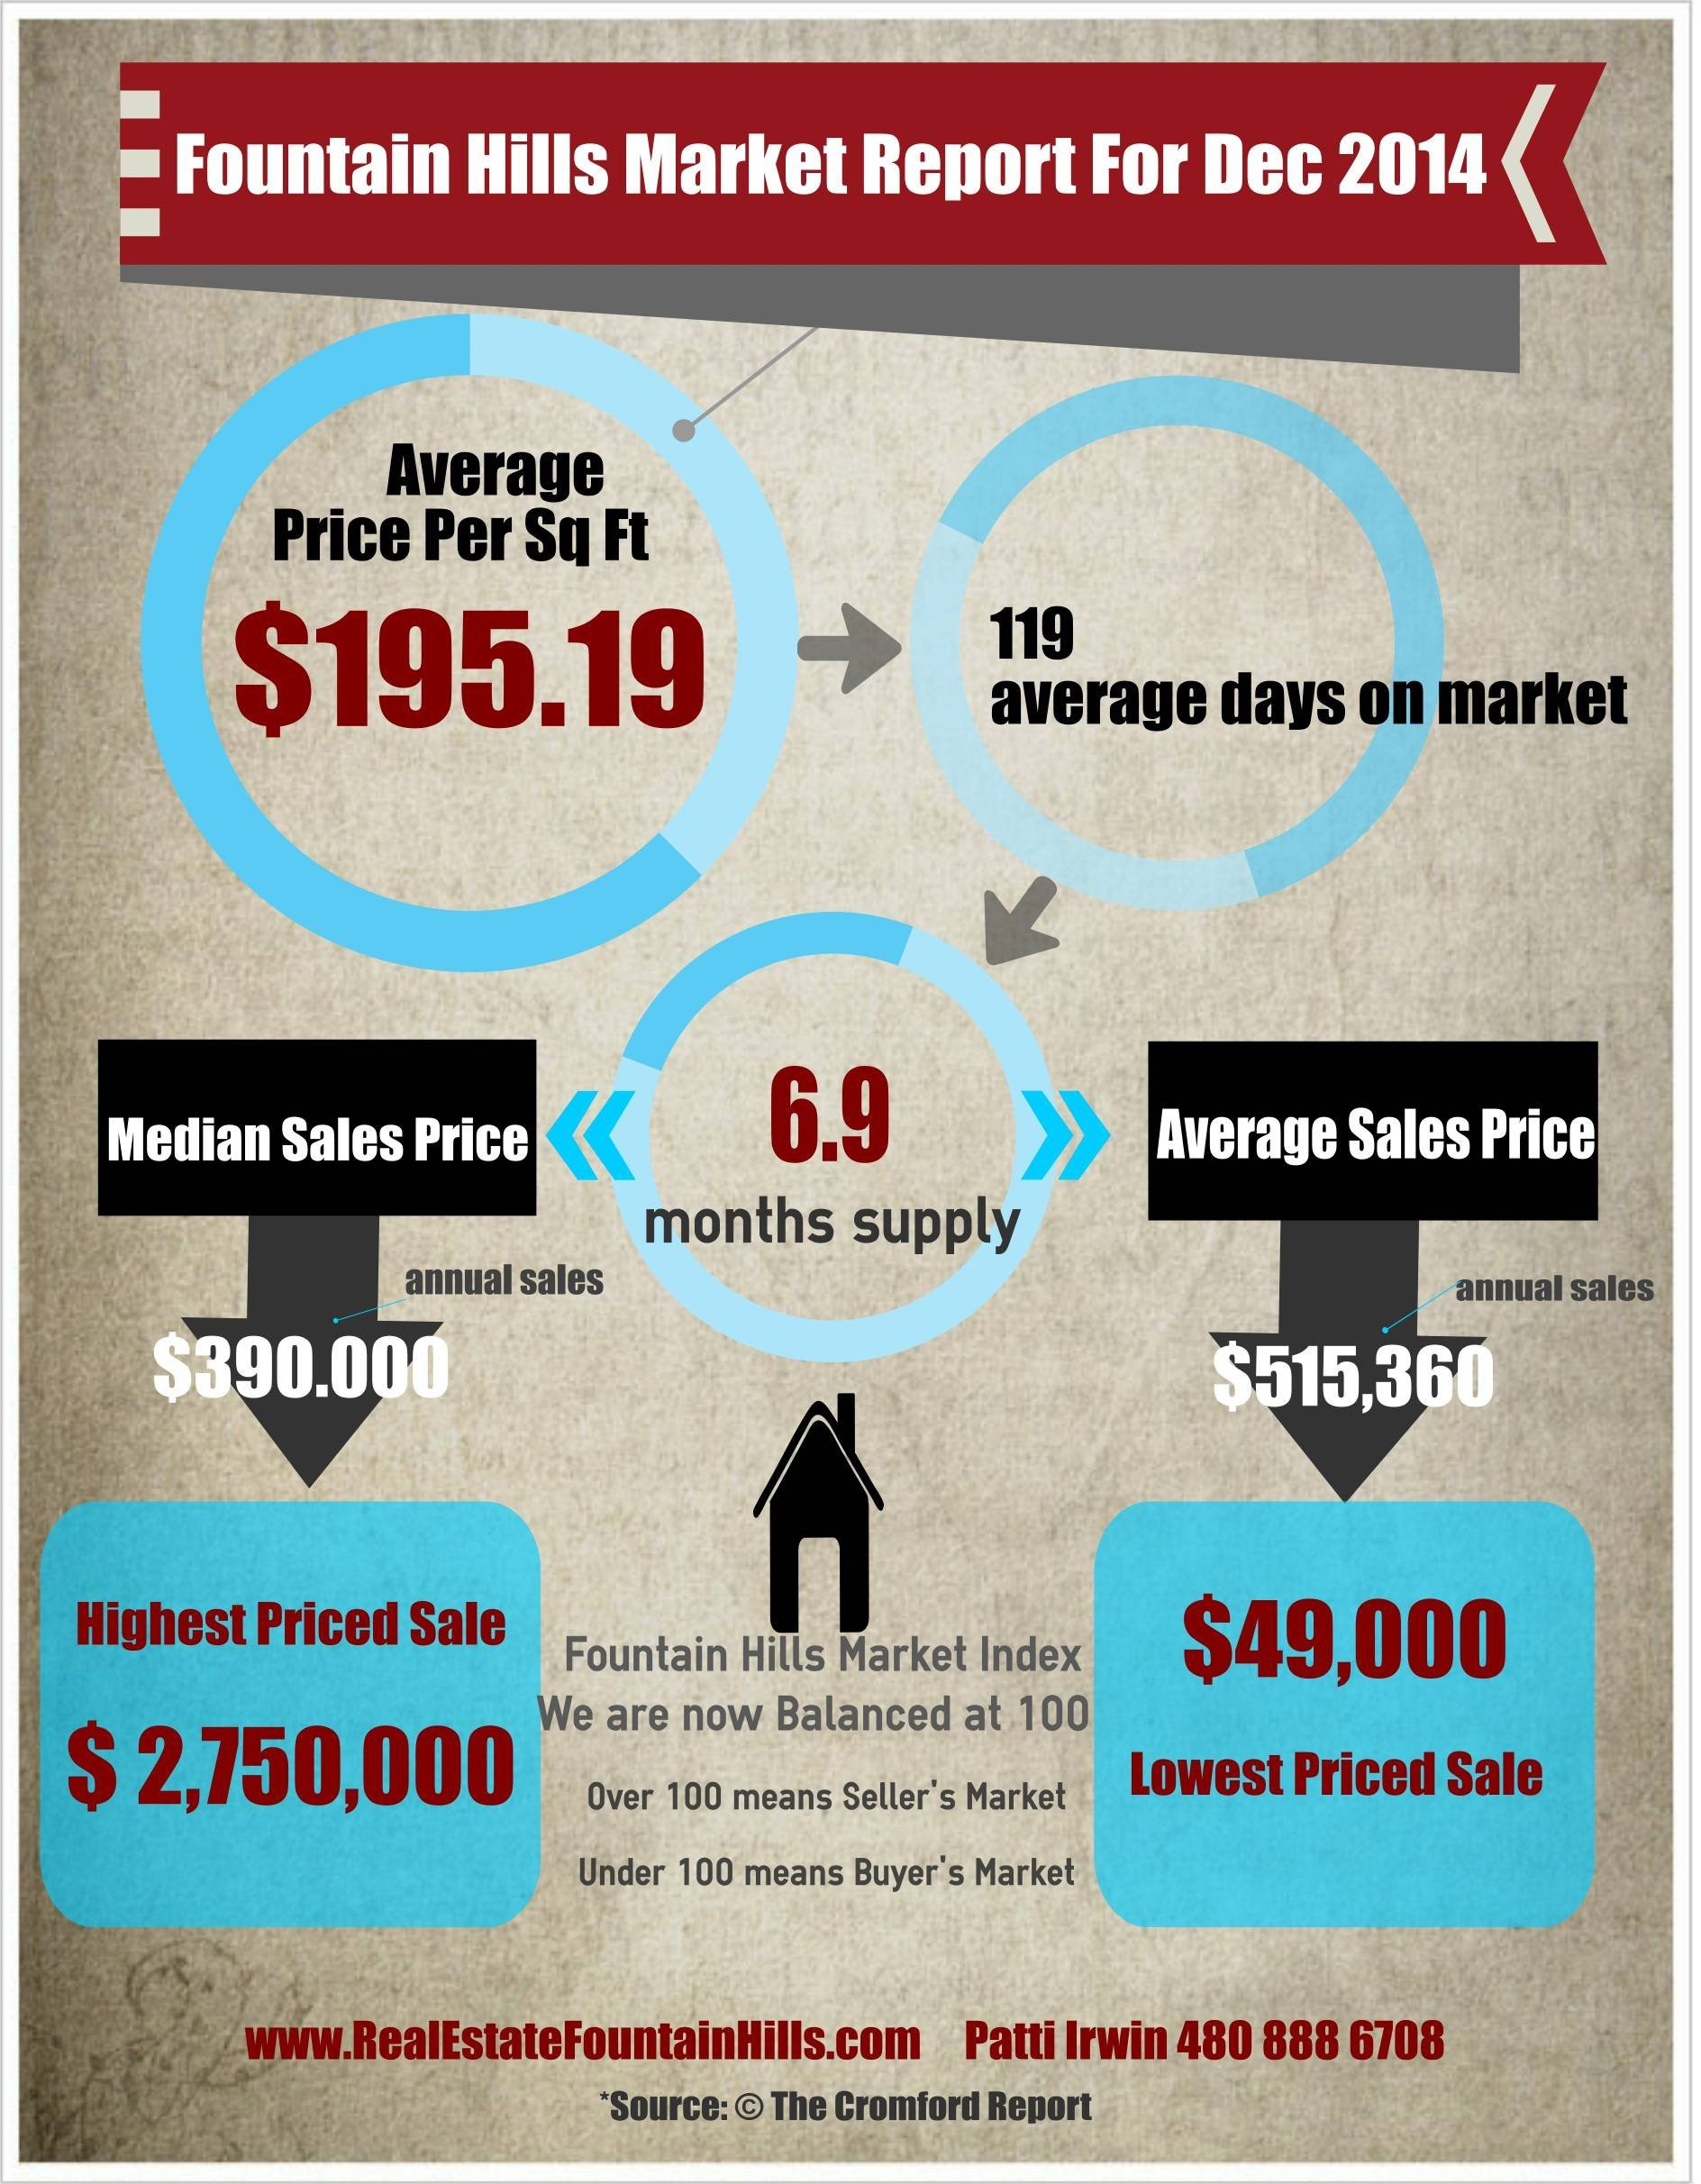 Real Estate Market Report Template Fountain Hills Real Estate Market Update